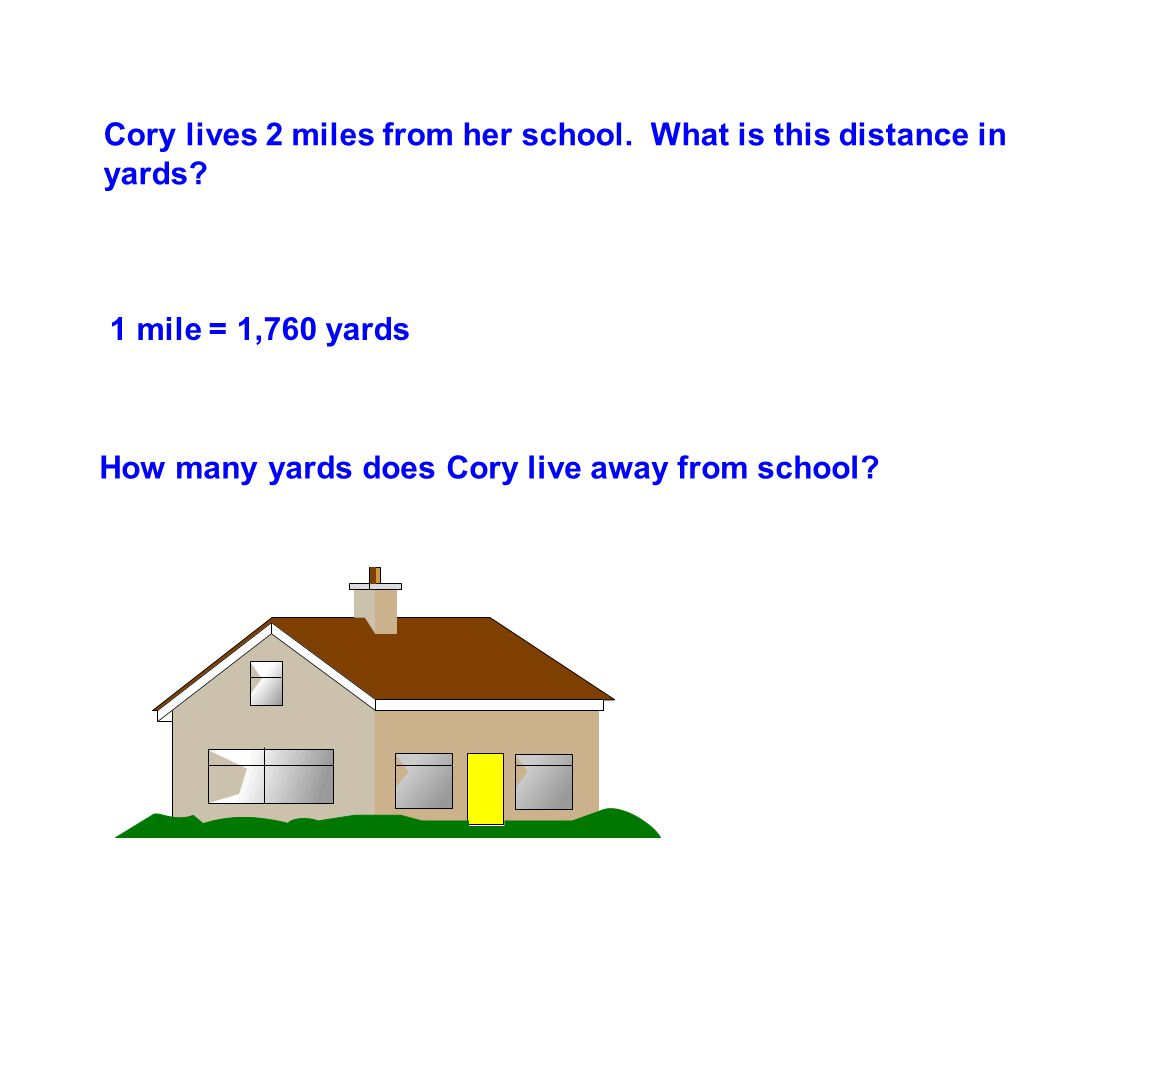 Cory lives 2 miles from her school. What is this distance in yards.